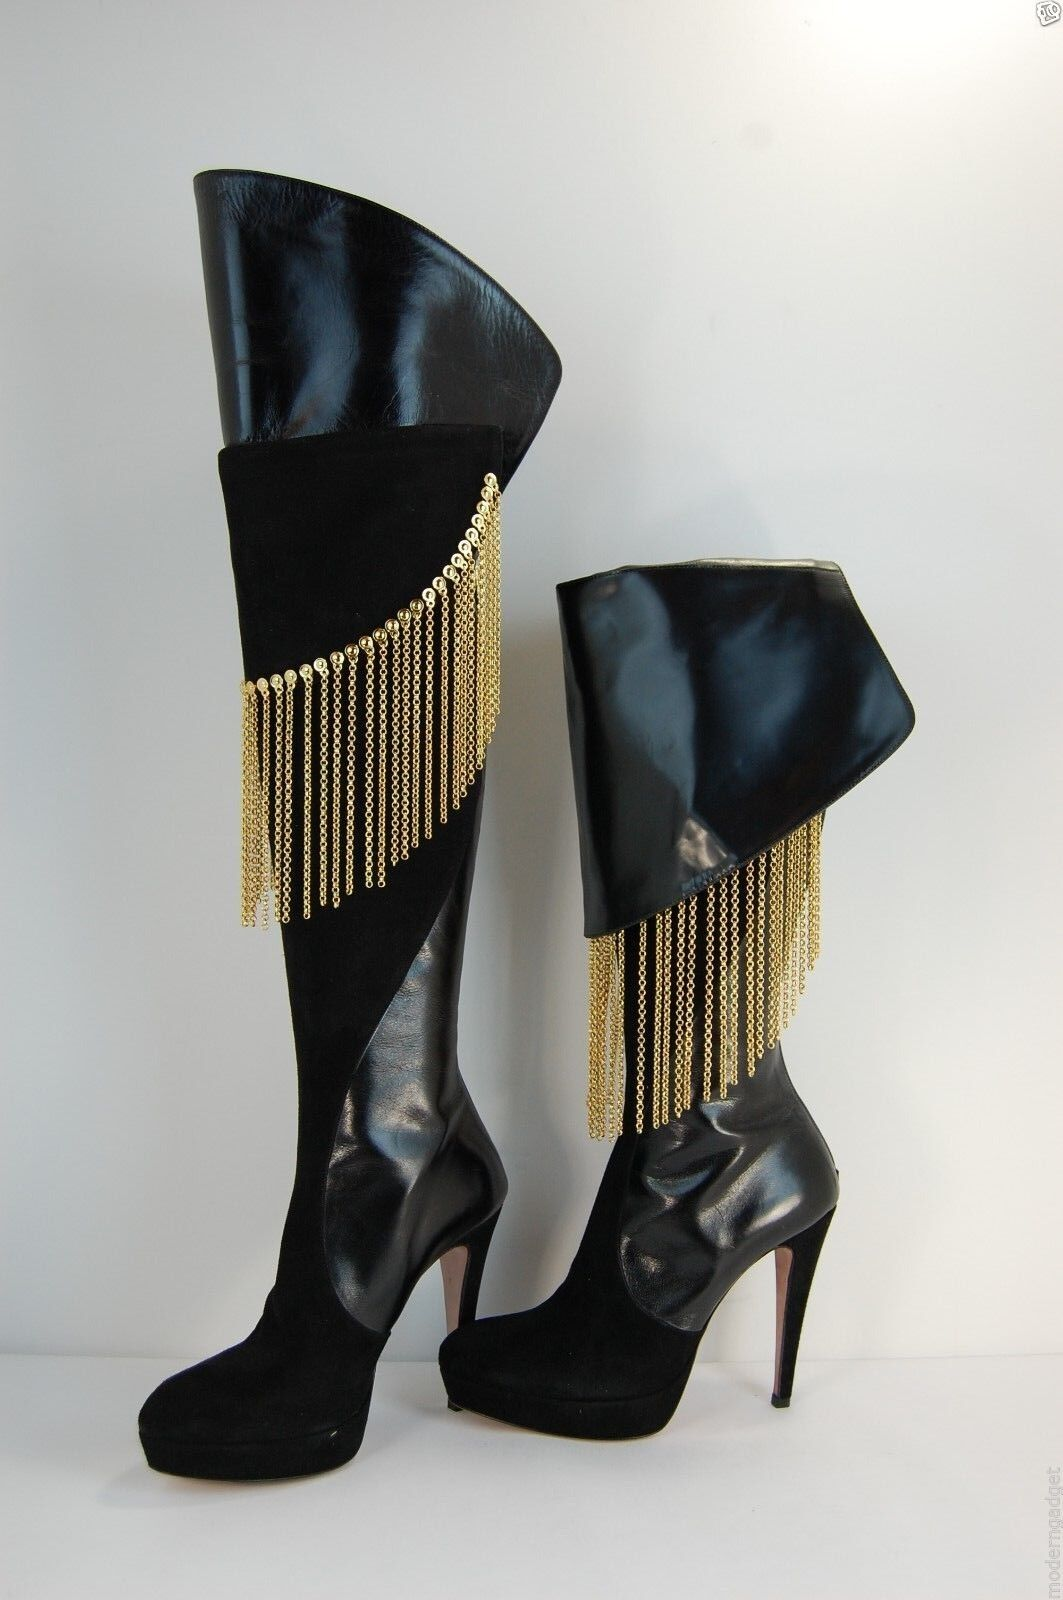 FRANCESCO SACCO FOLD OVER THE KNEE BOOTS BLACK&GOLD CHAIN FRINGE US 6